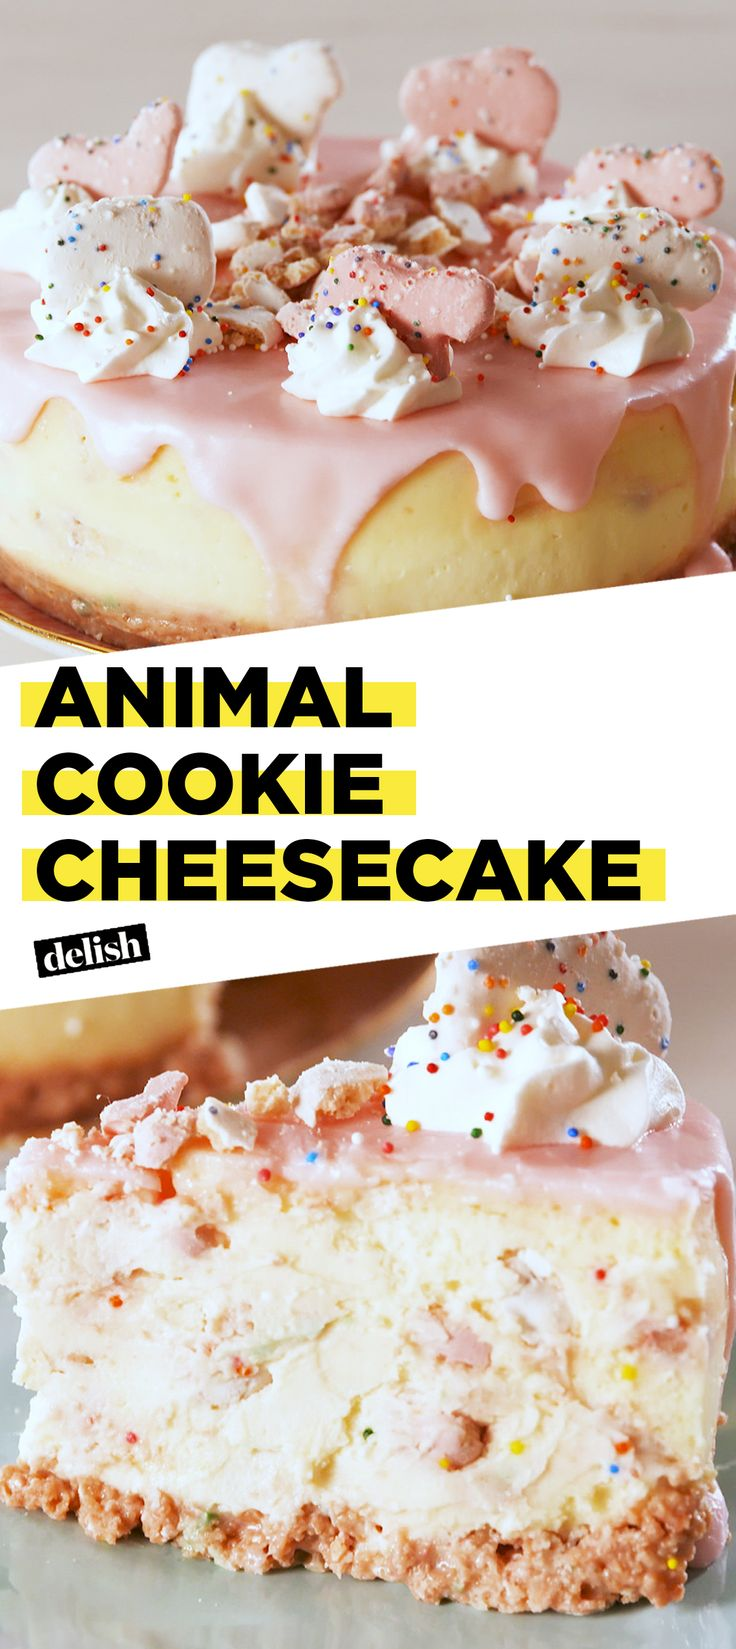 How To Make Animal Cookie Cheesecake